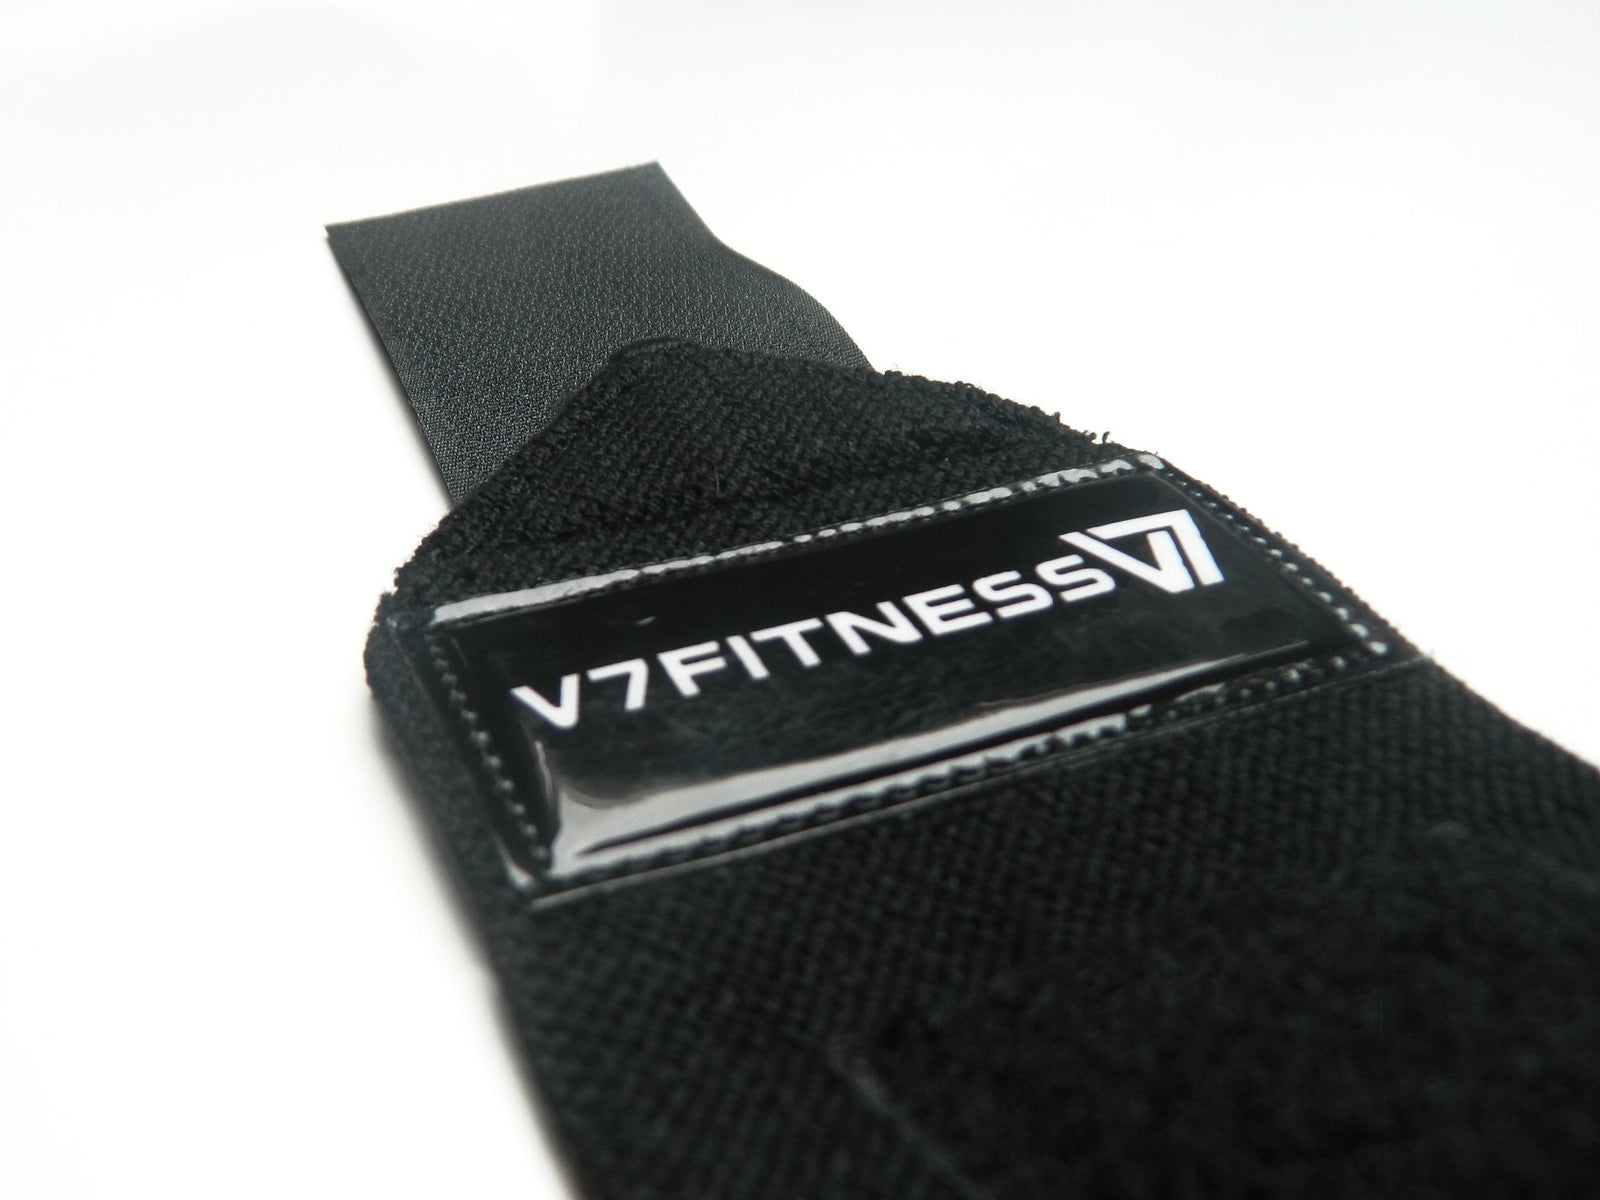 Official Wrist Wraps